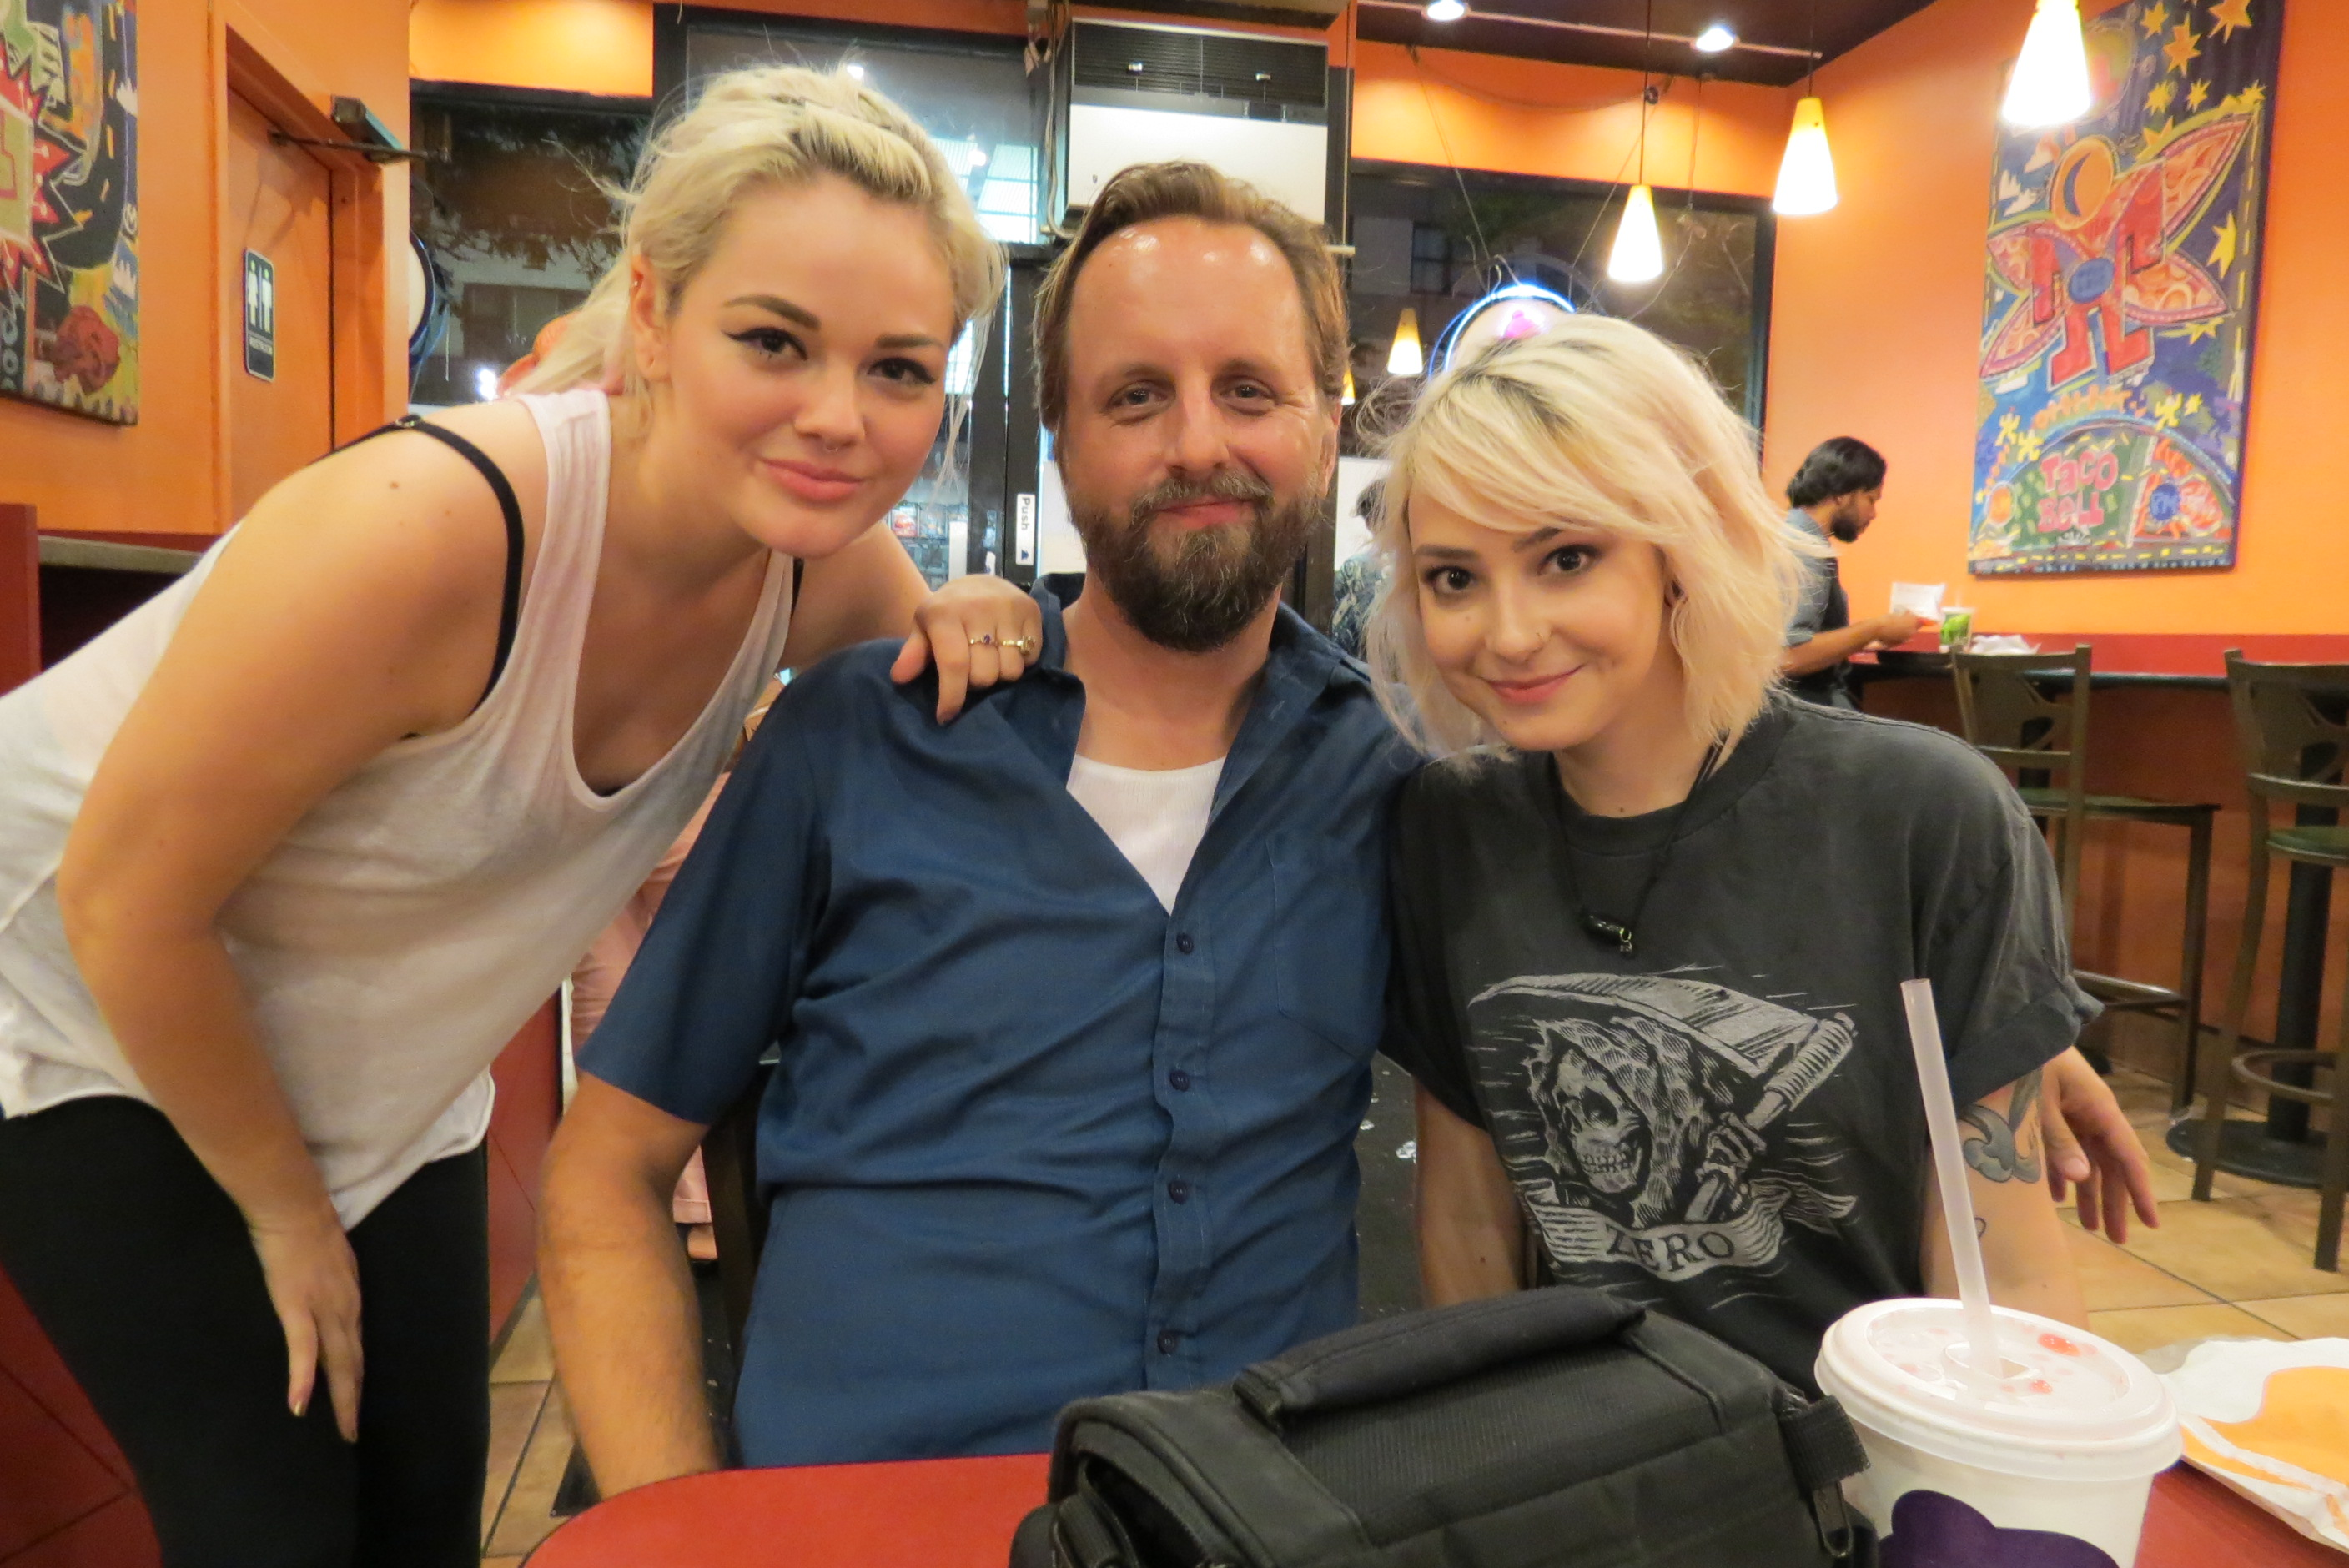 Normal Bob with blonde girls at Taco Bell